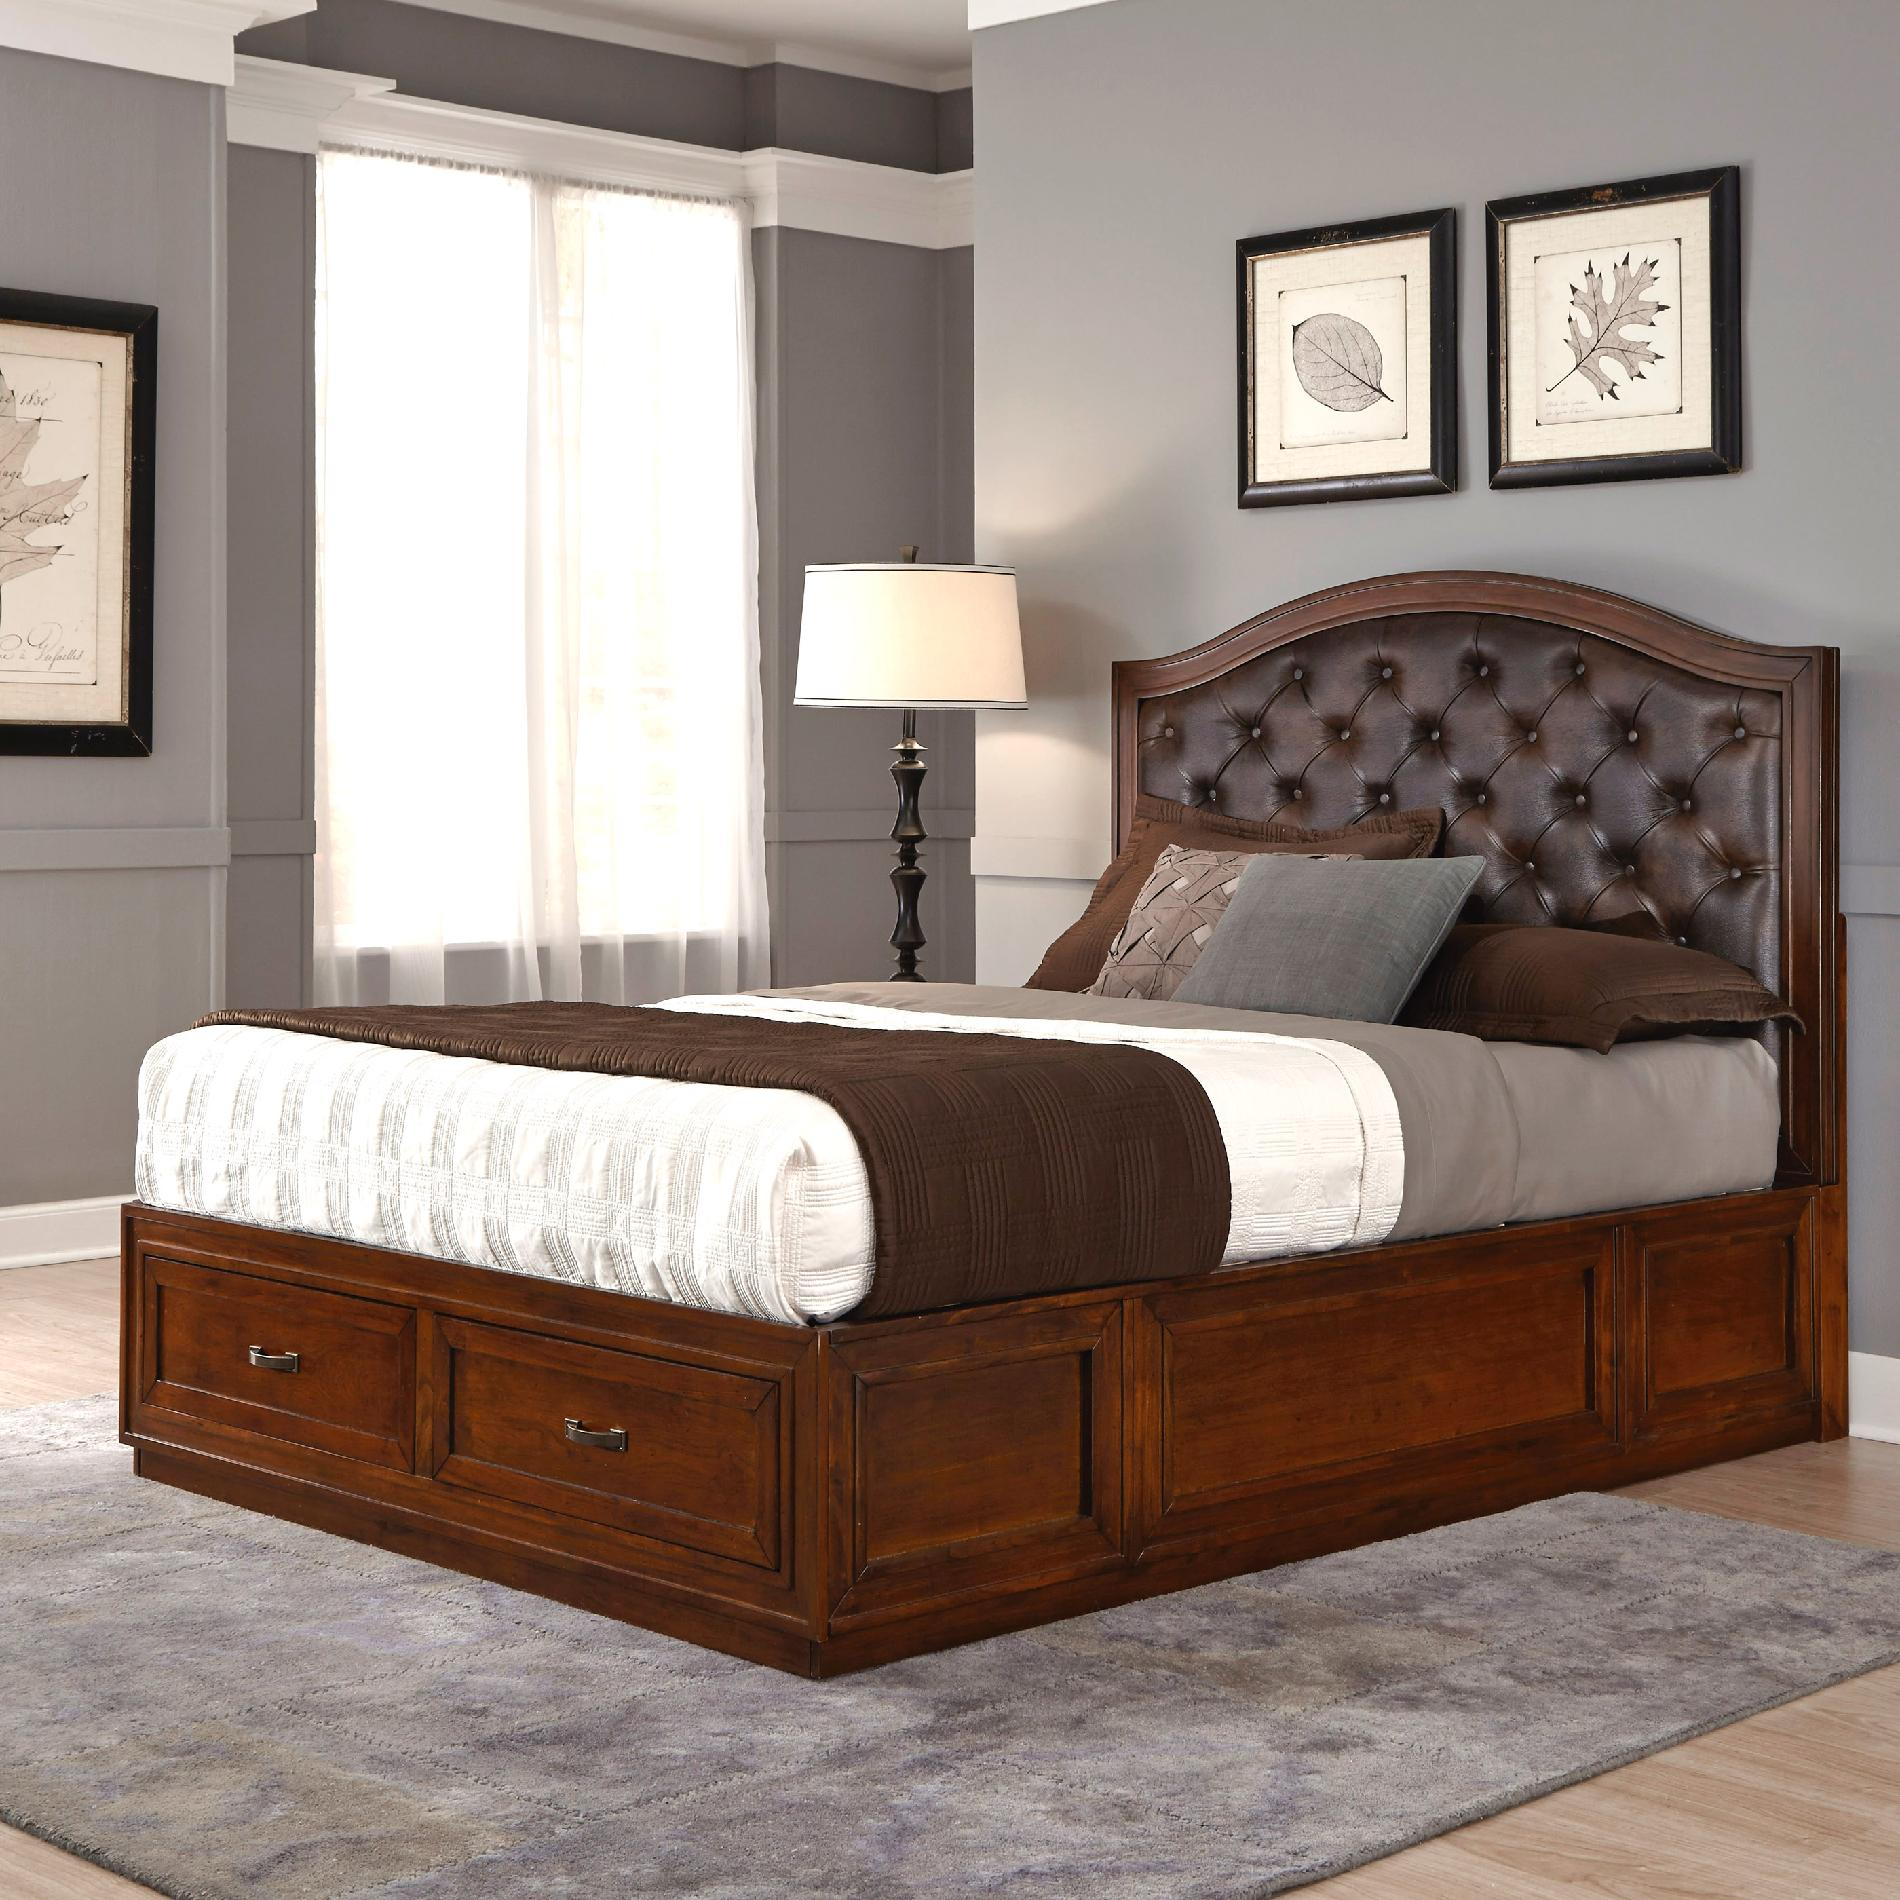 Home Styles Duet King Tufted Diamond Camelback Bed Brown ...